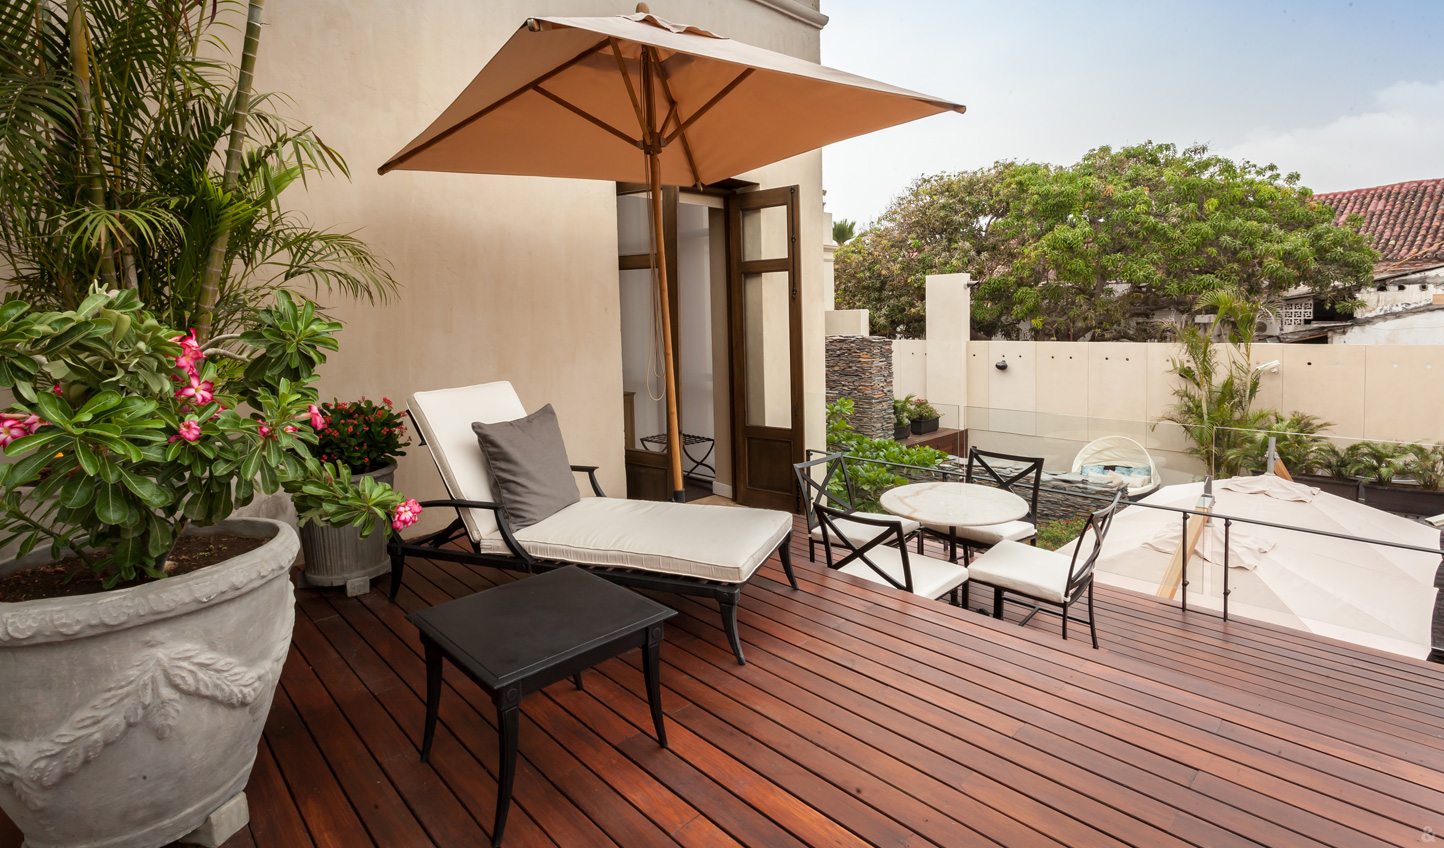 For that special touch, opt for the Suite de los Reyes and enjoy your own private sun terrace